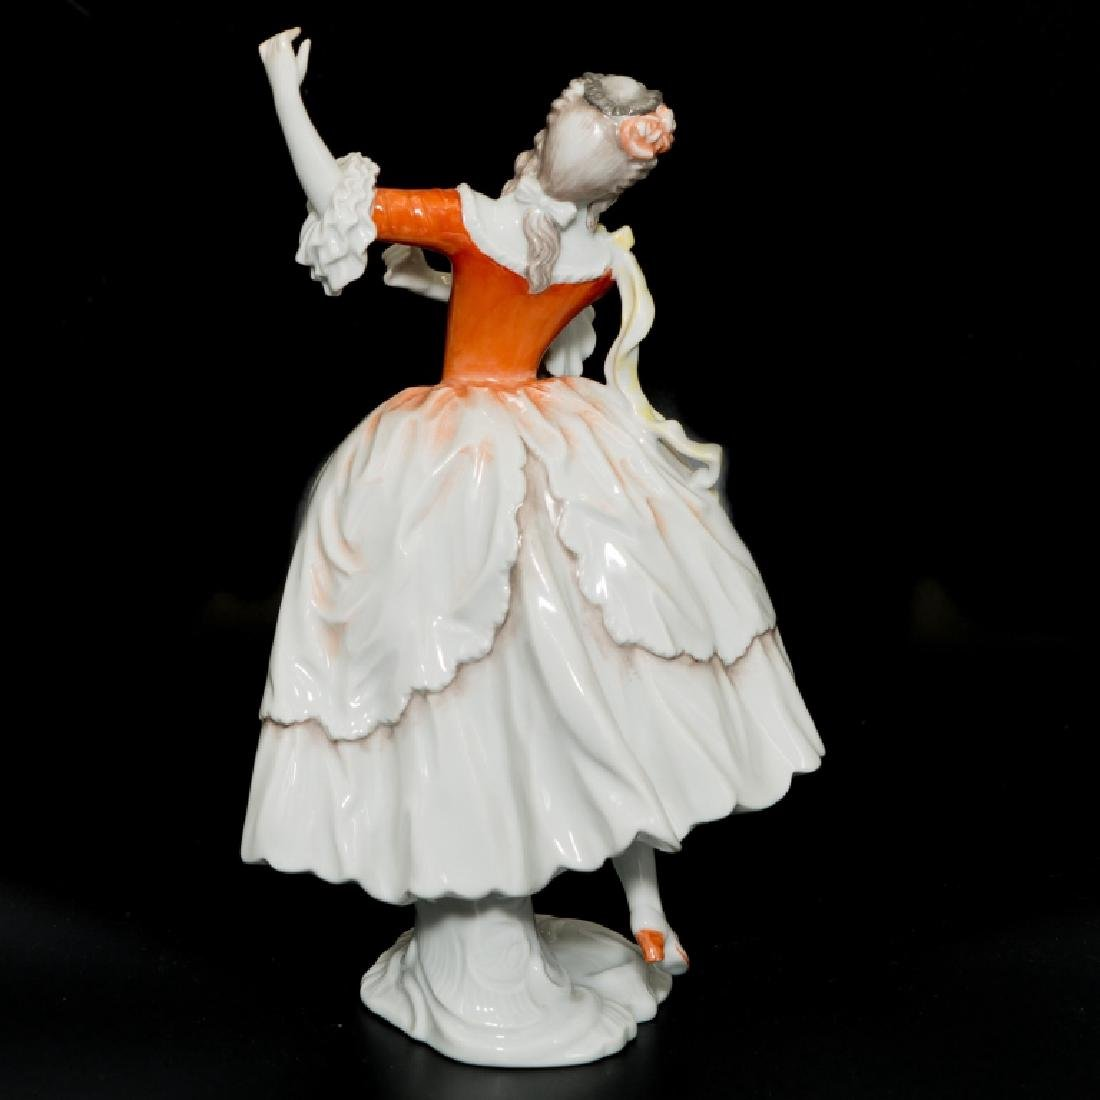 Rosenthal Rococo Girl Dancing Orange White Dress - 3